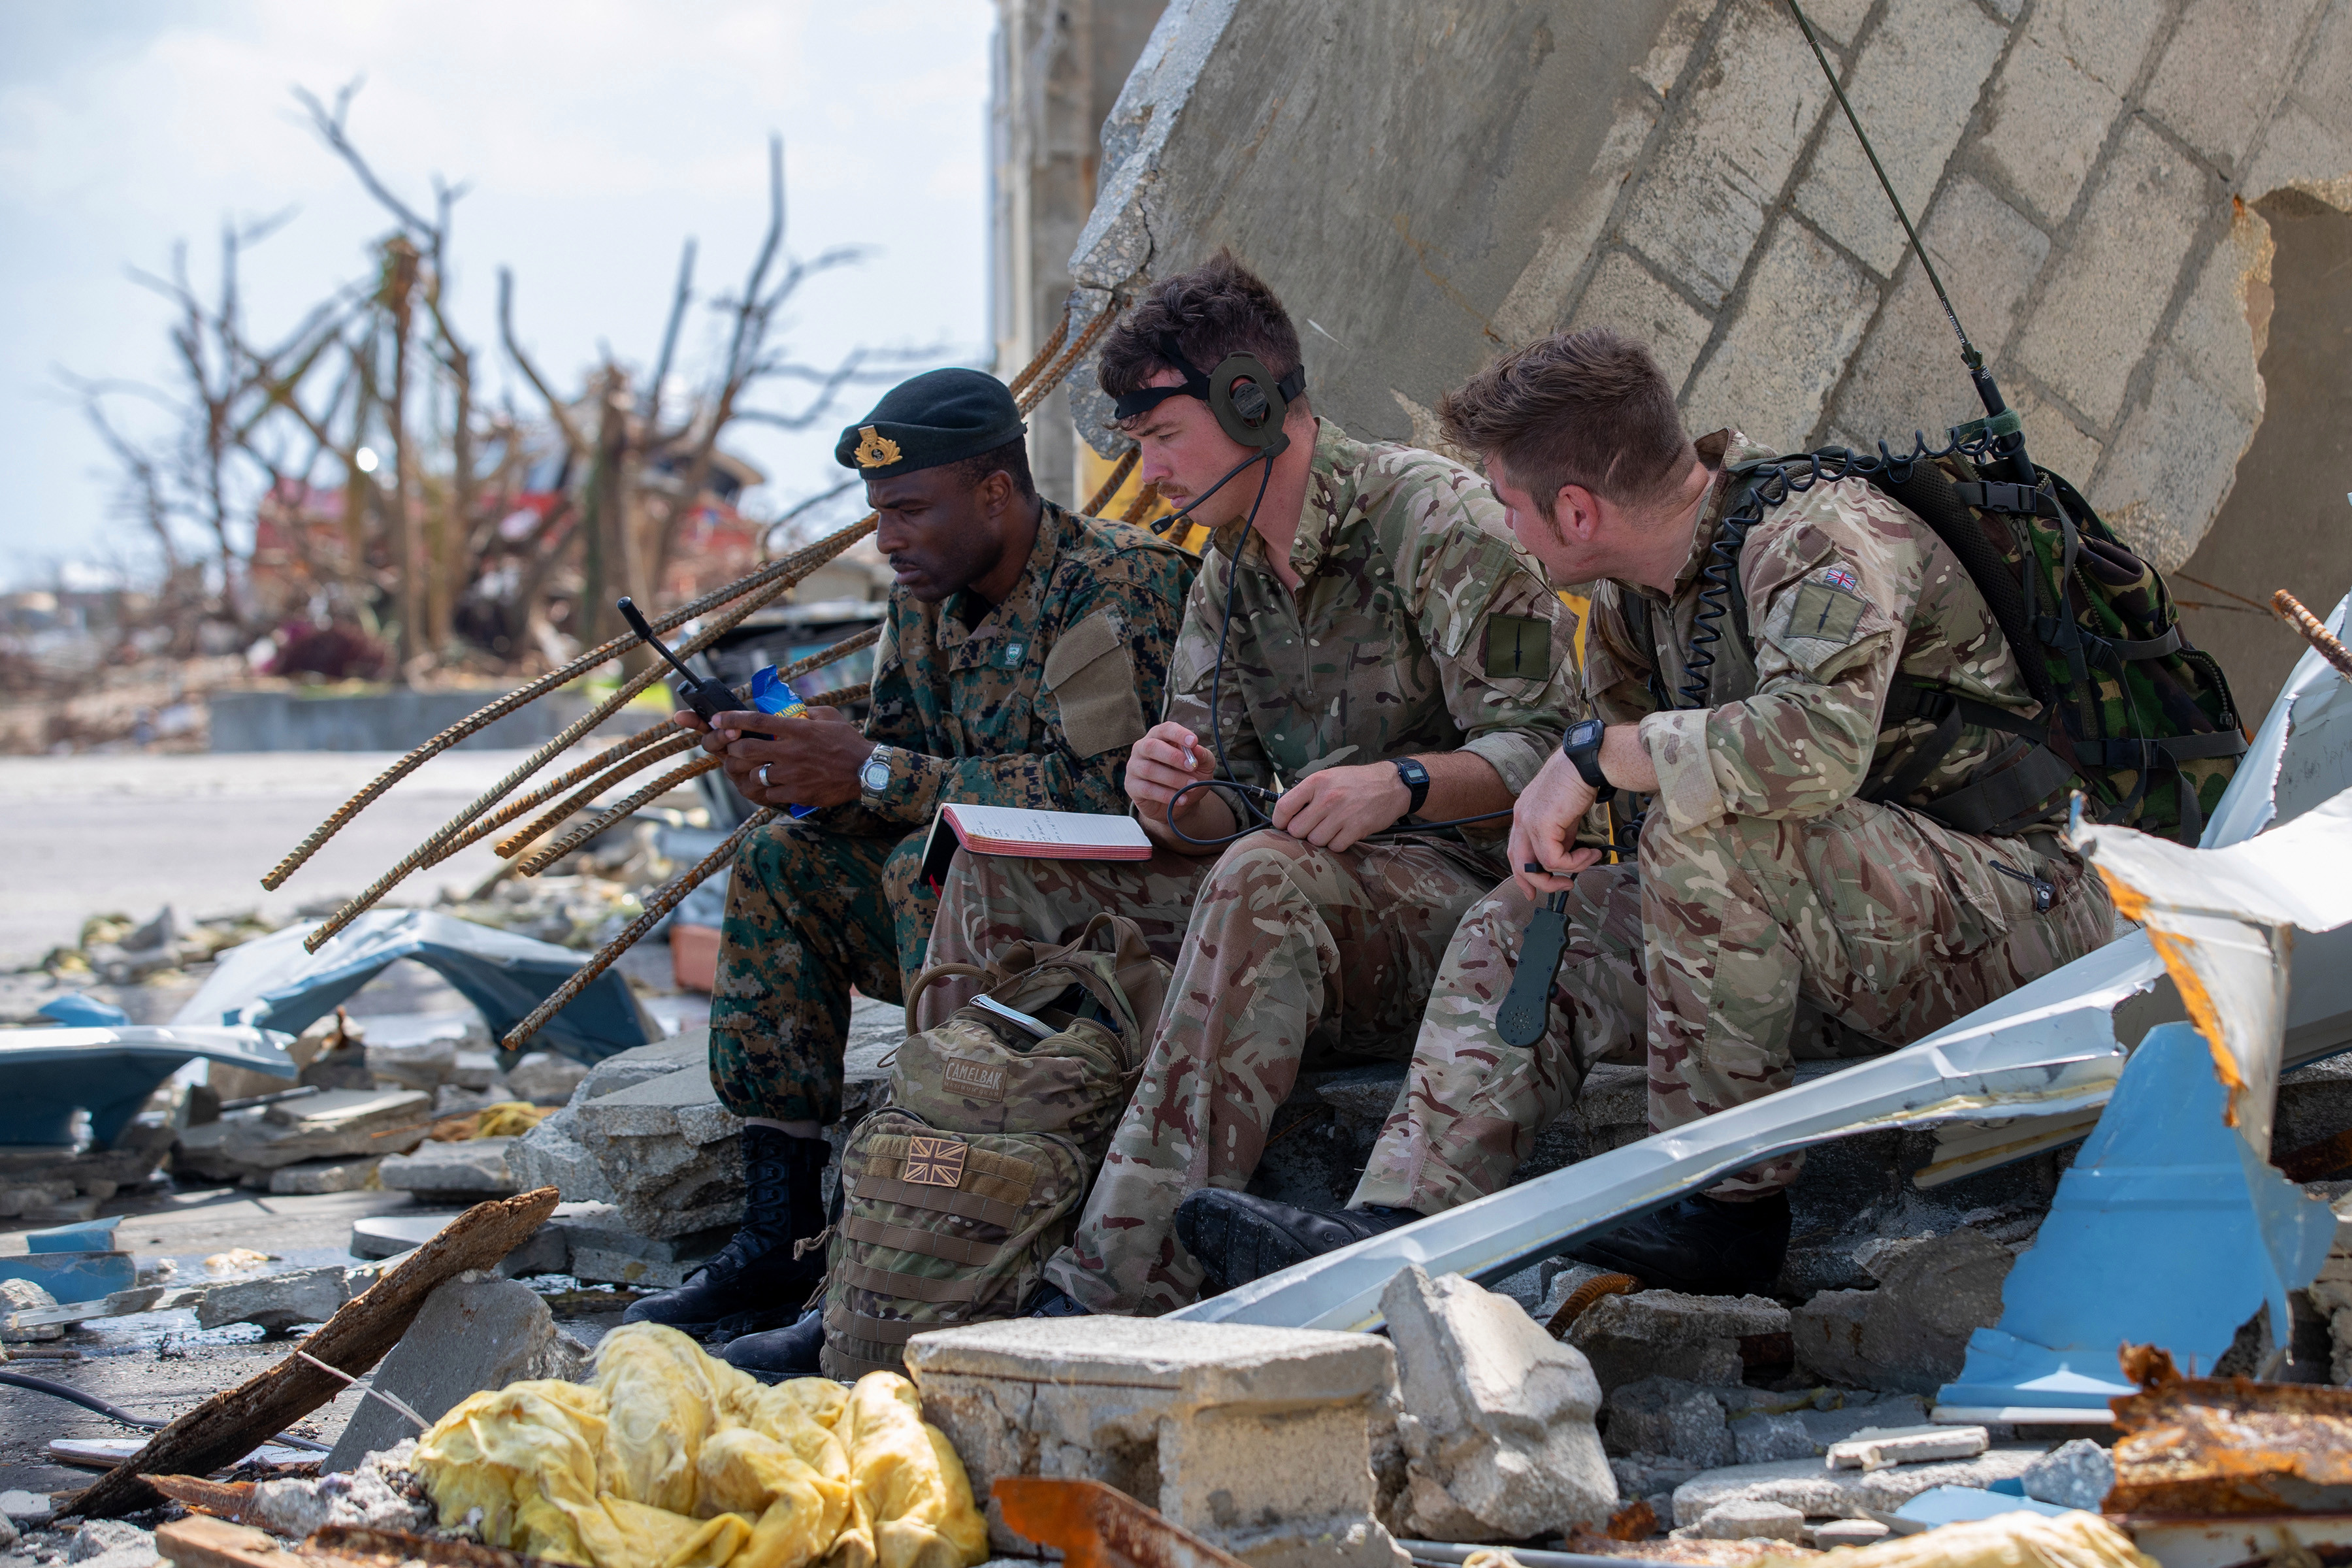 Brit members of the Humanitarian and Disaster Relief team work with a Bahamian soldier